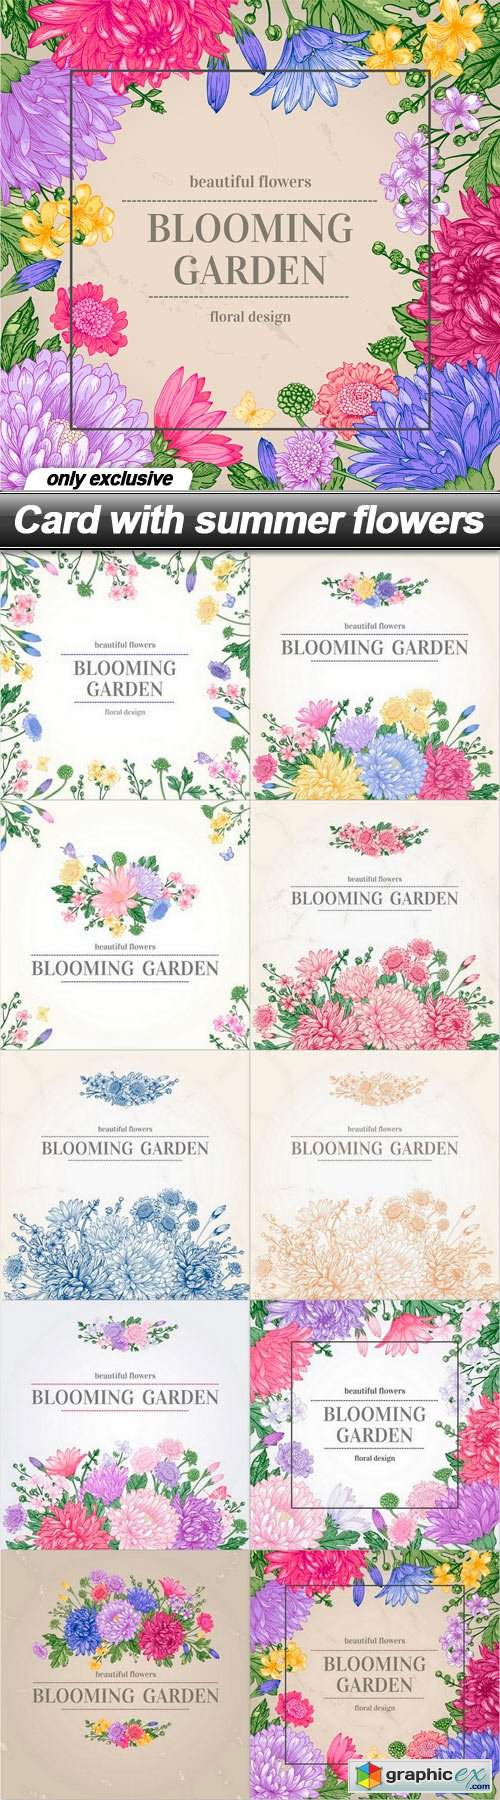 Card with summer flowers - 10 EPS